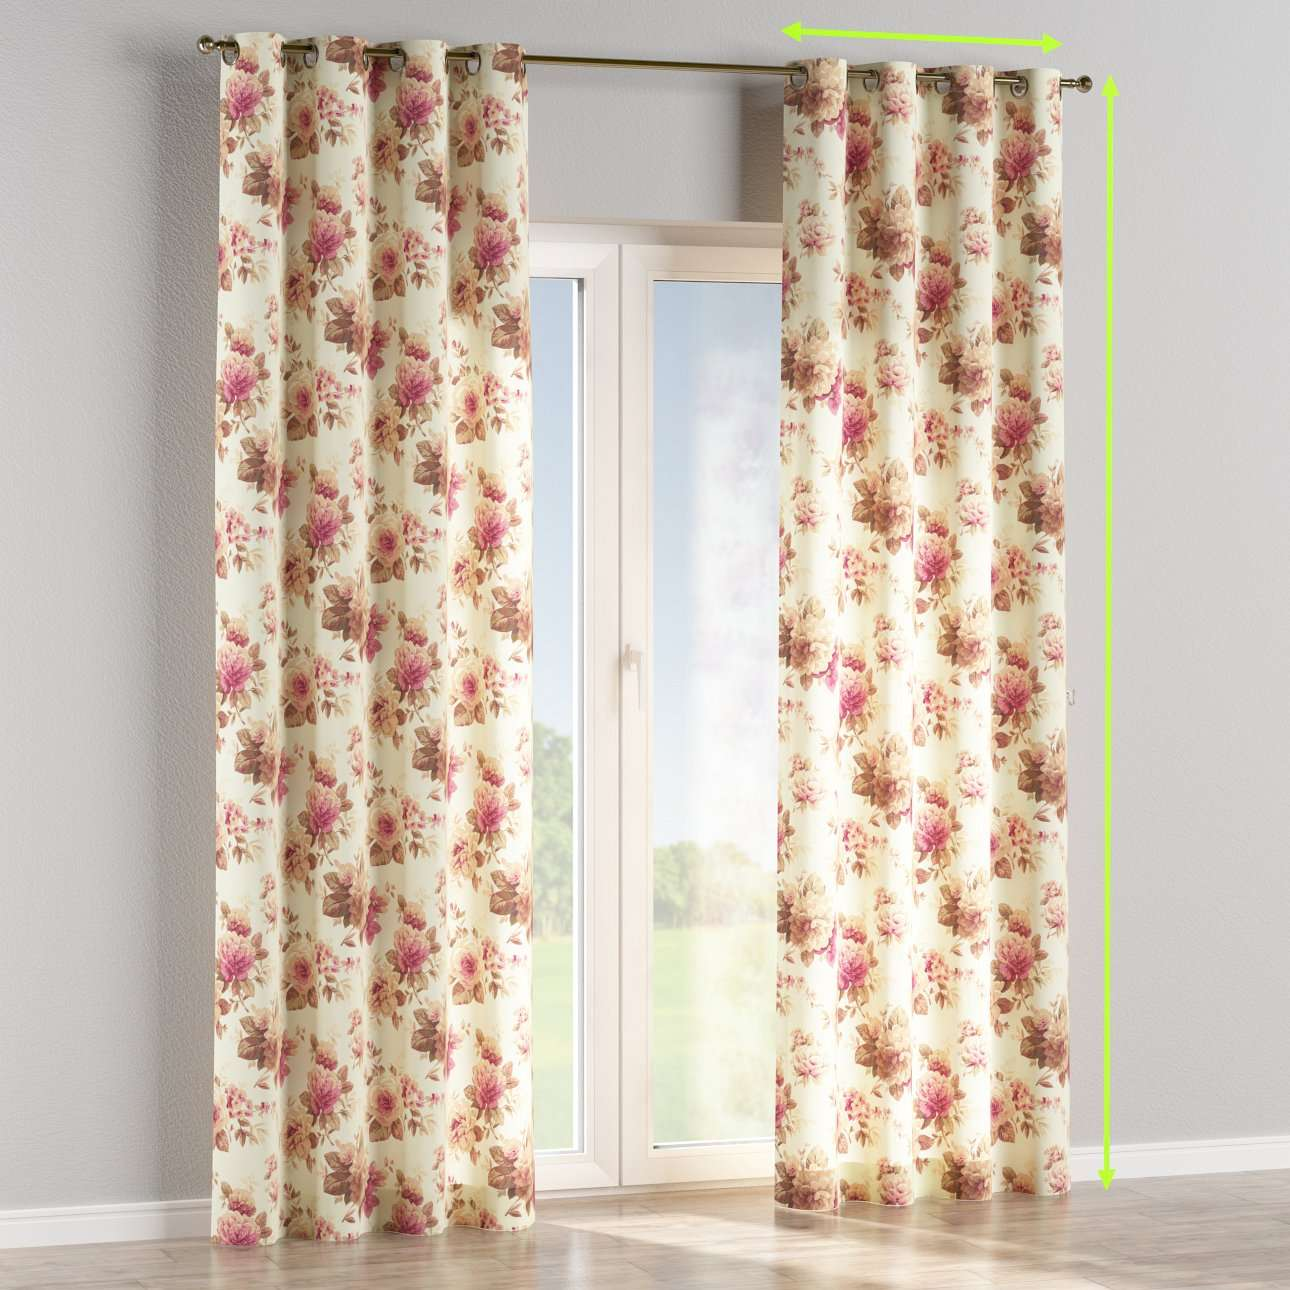 Eyelet curtain in collection Londres, fabric: 141-06